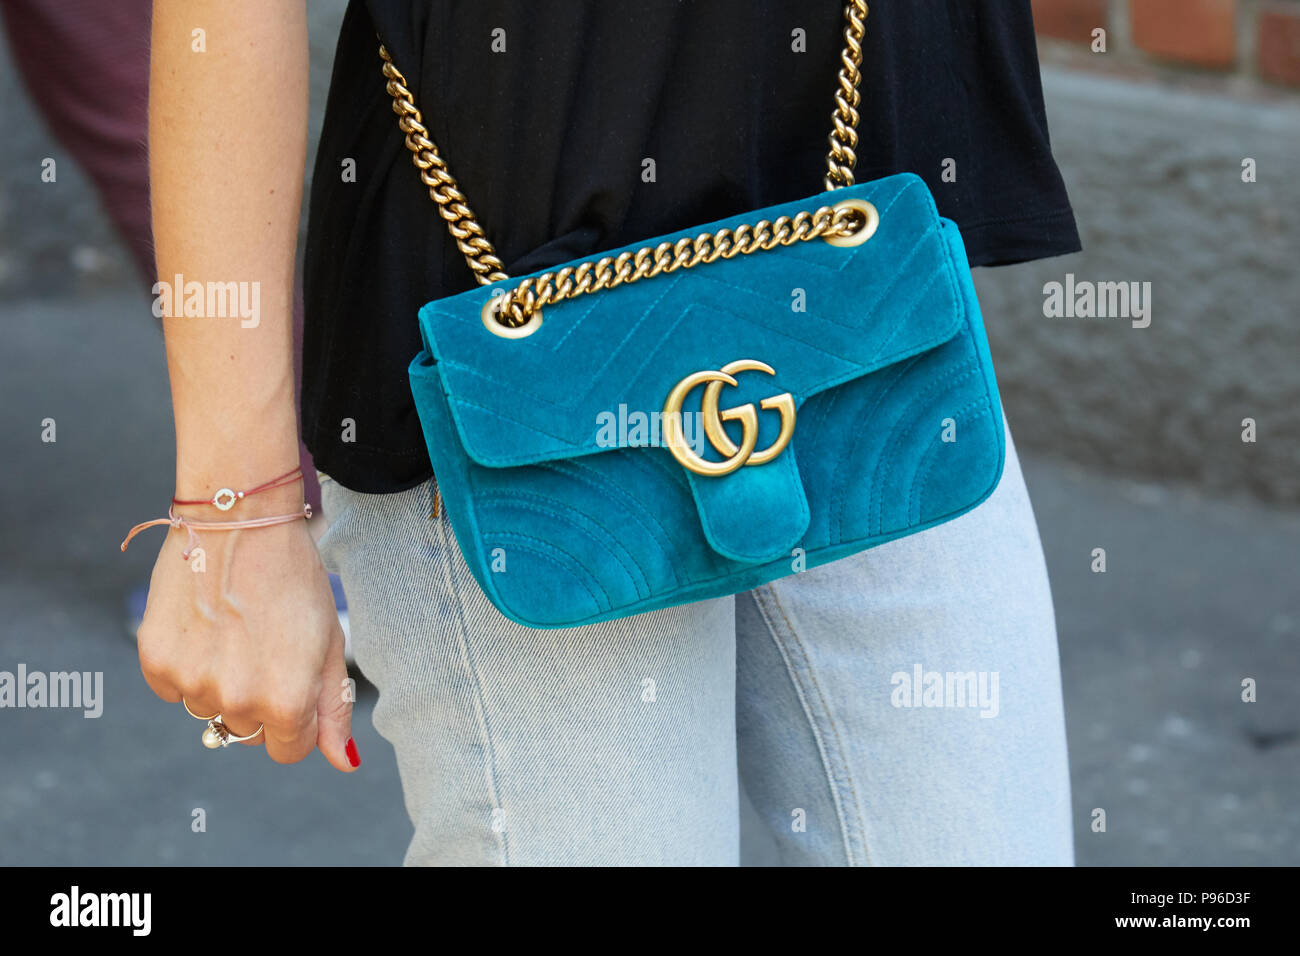 04a9adadb5d4 MILAN - le 18 juin   Woman with blue velvet sac gucci Fendi avant fashion  show, Milan Fashion Week street style, le 18 juin 2018 à Milan.